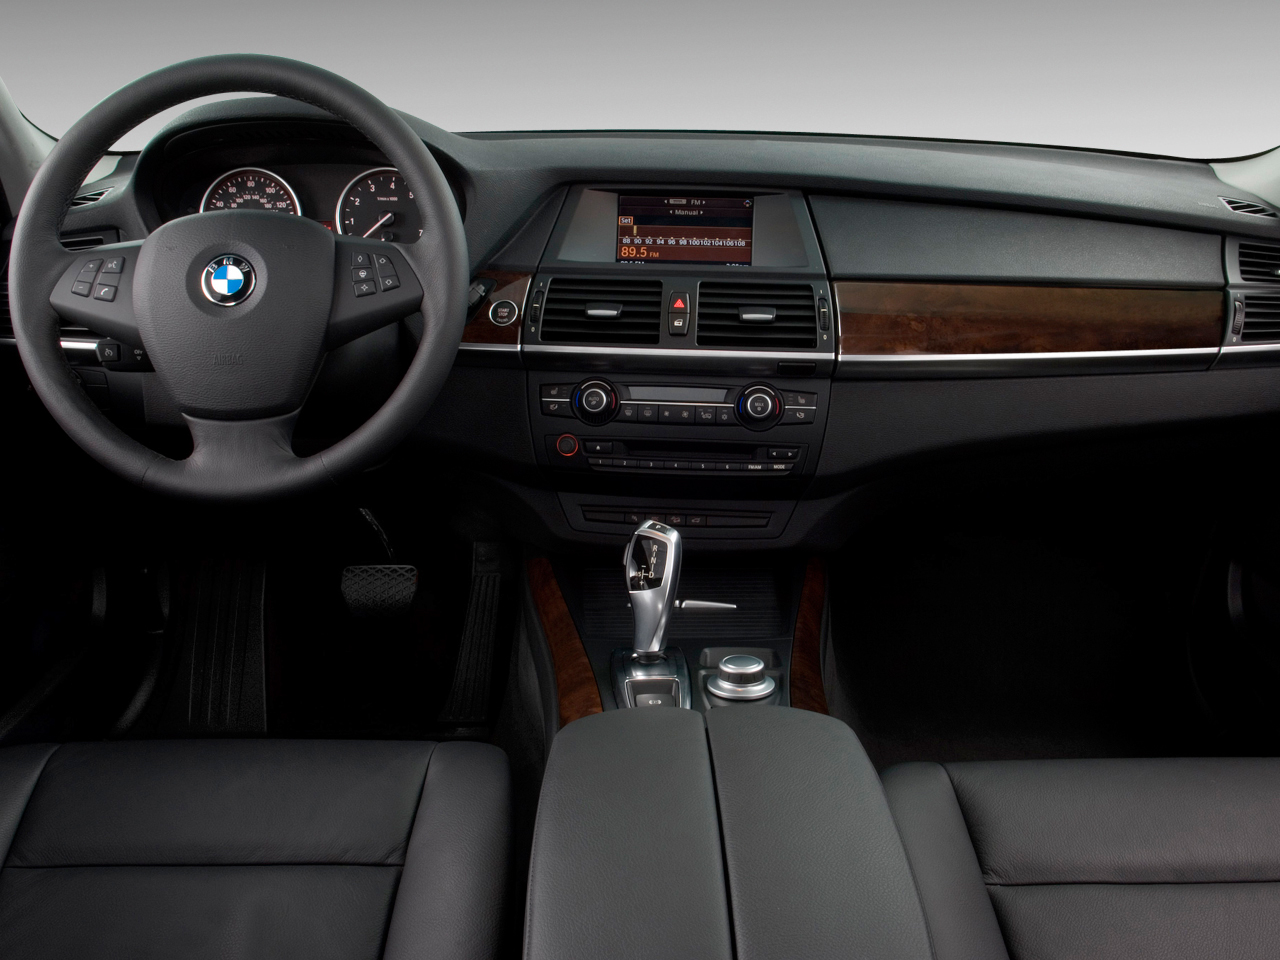 2009 BMW 335d and X5 xDrive 35d - Latest News, Reviews, and Auto ...